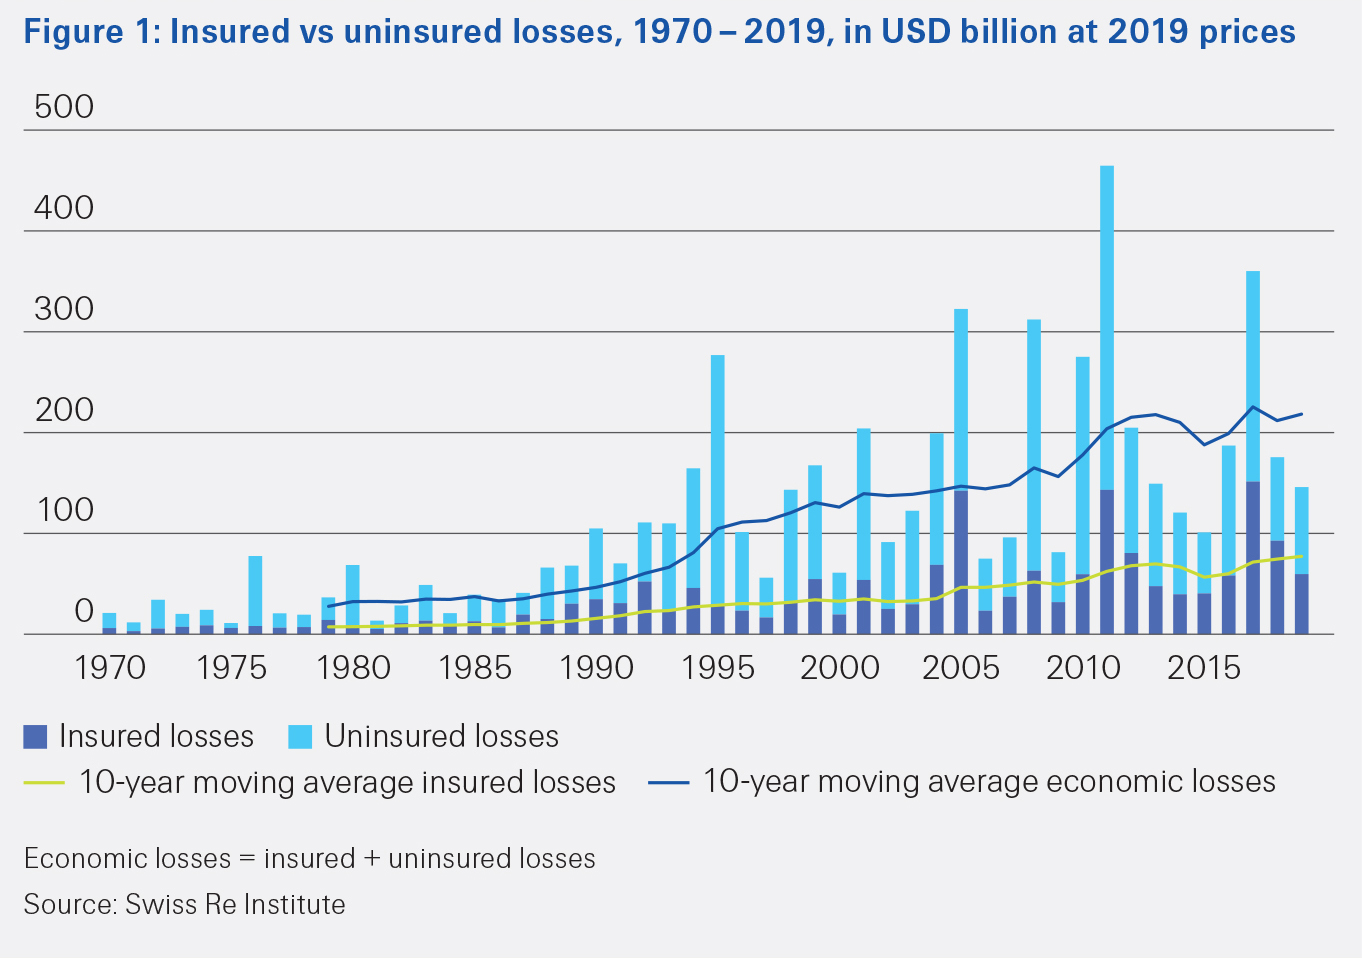 Table showing Insured versus uninsured losses between 1970 and 2019, in USD billion at 2019 prices